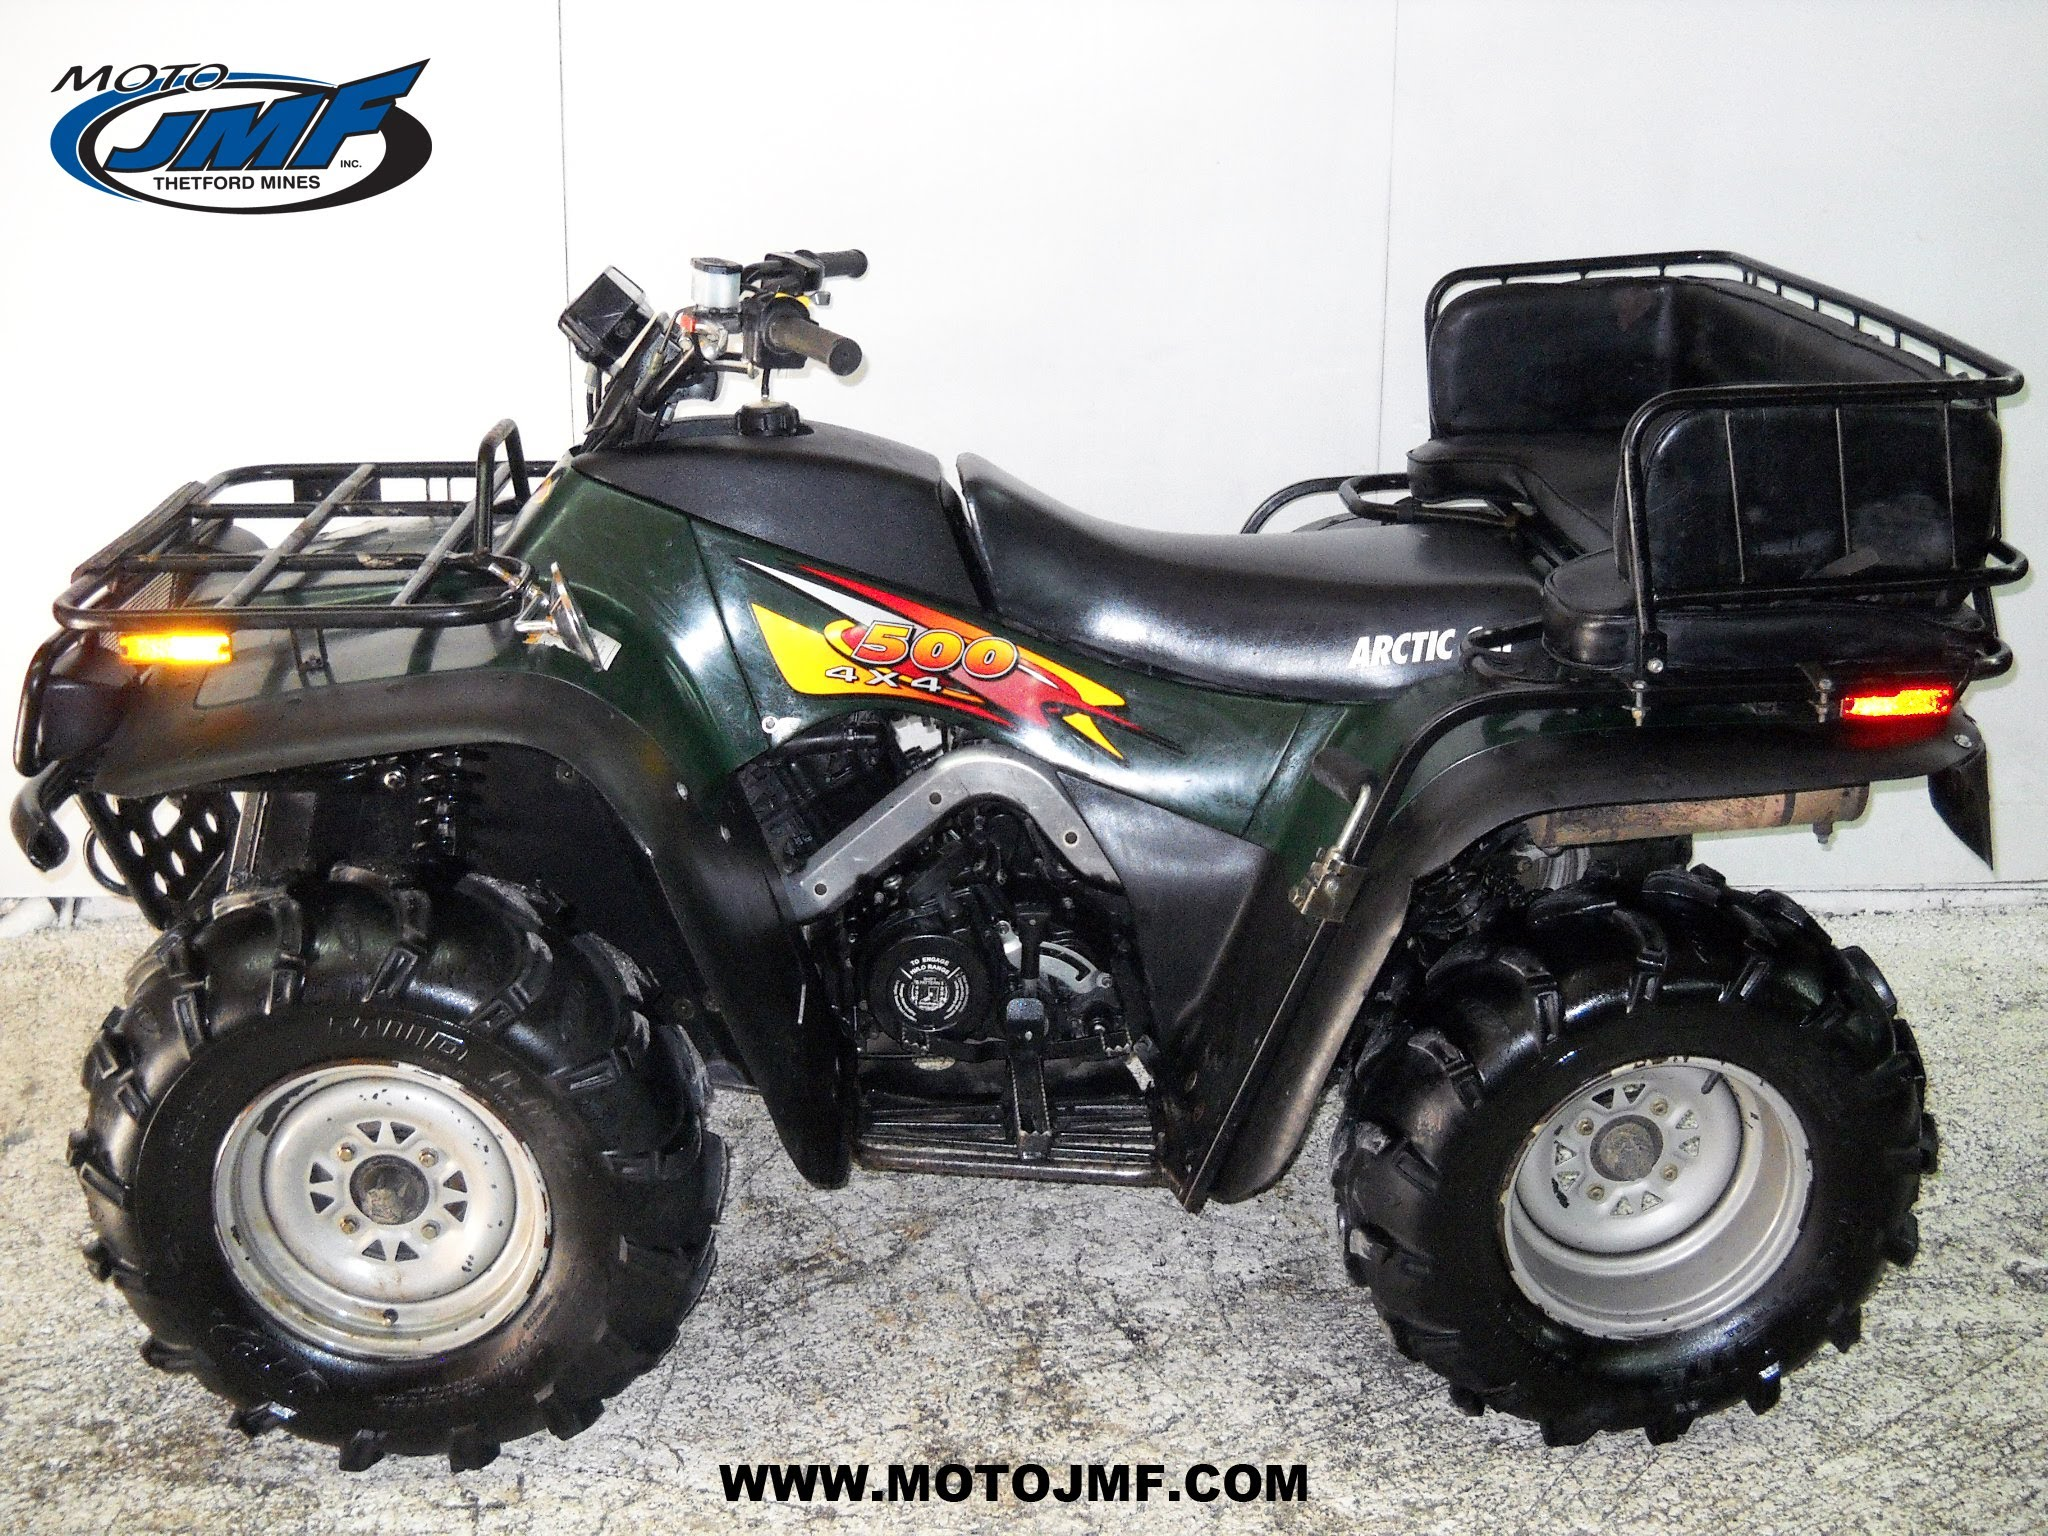 Wiring Diagram With Schematics For A 1998 400 4x4 Arctic Cat Atv 90 Dvx 2007 Electrical 300